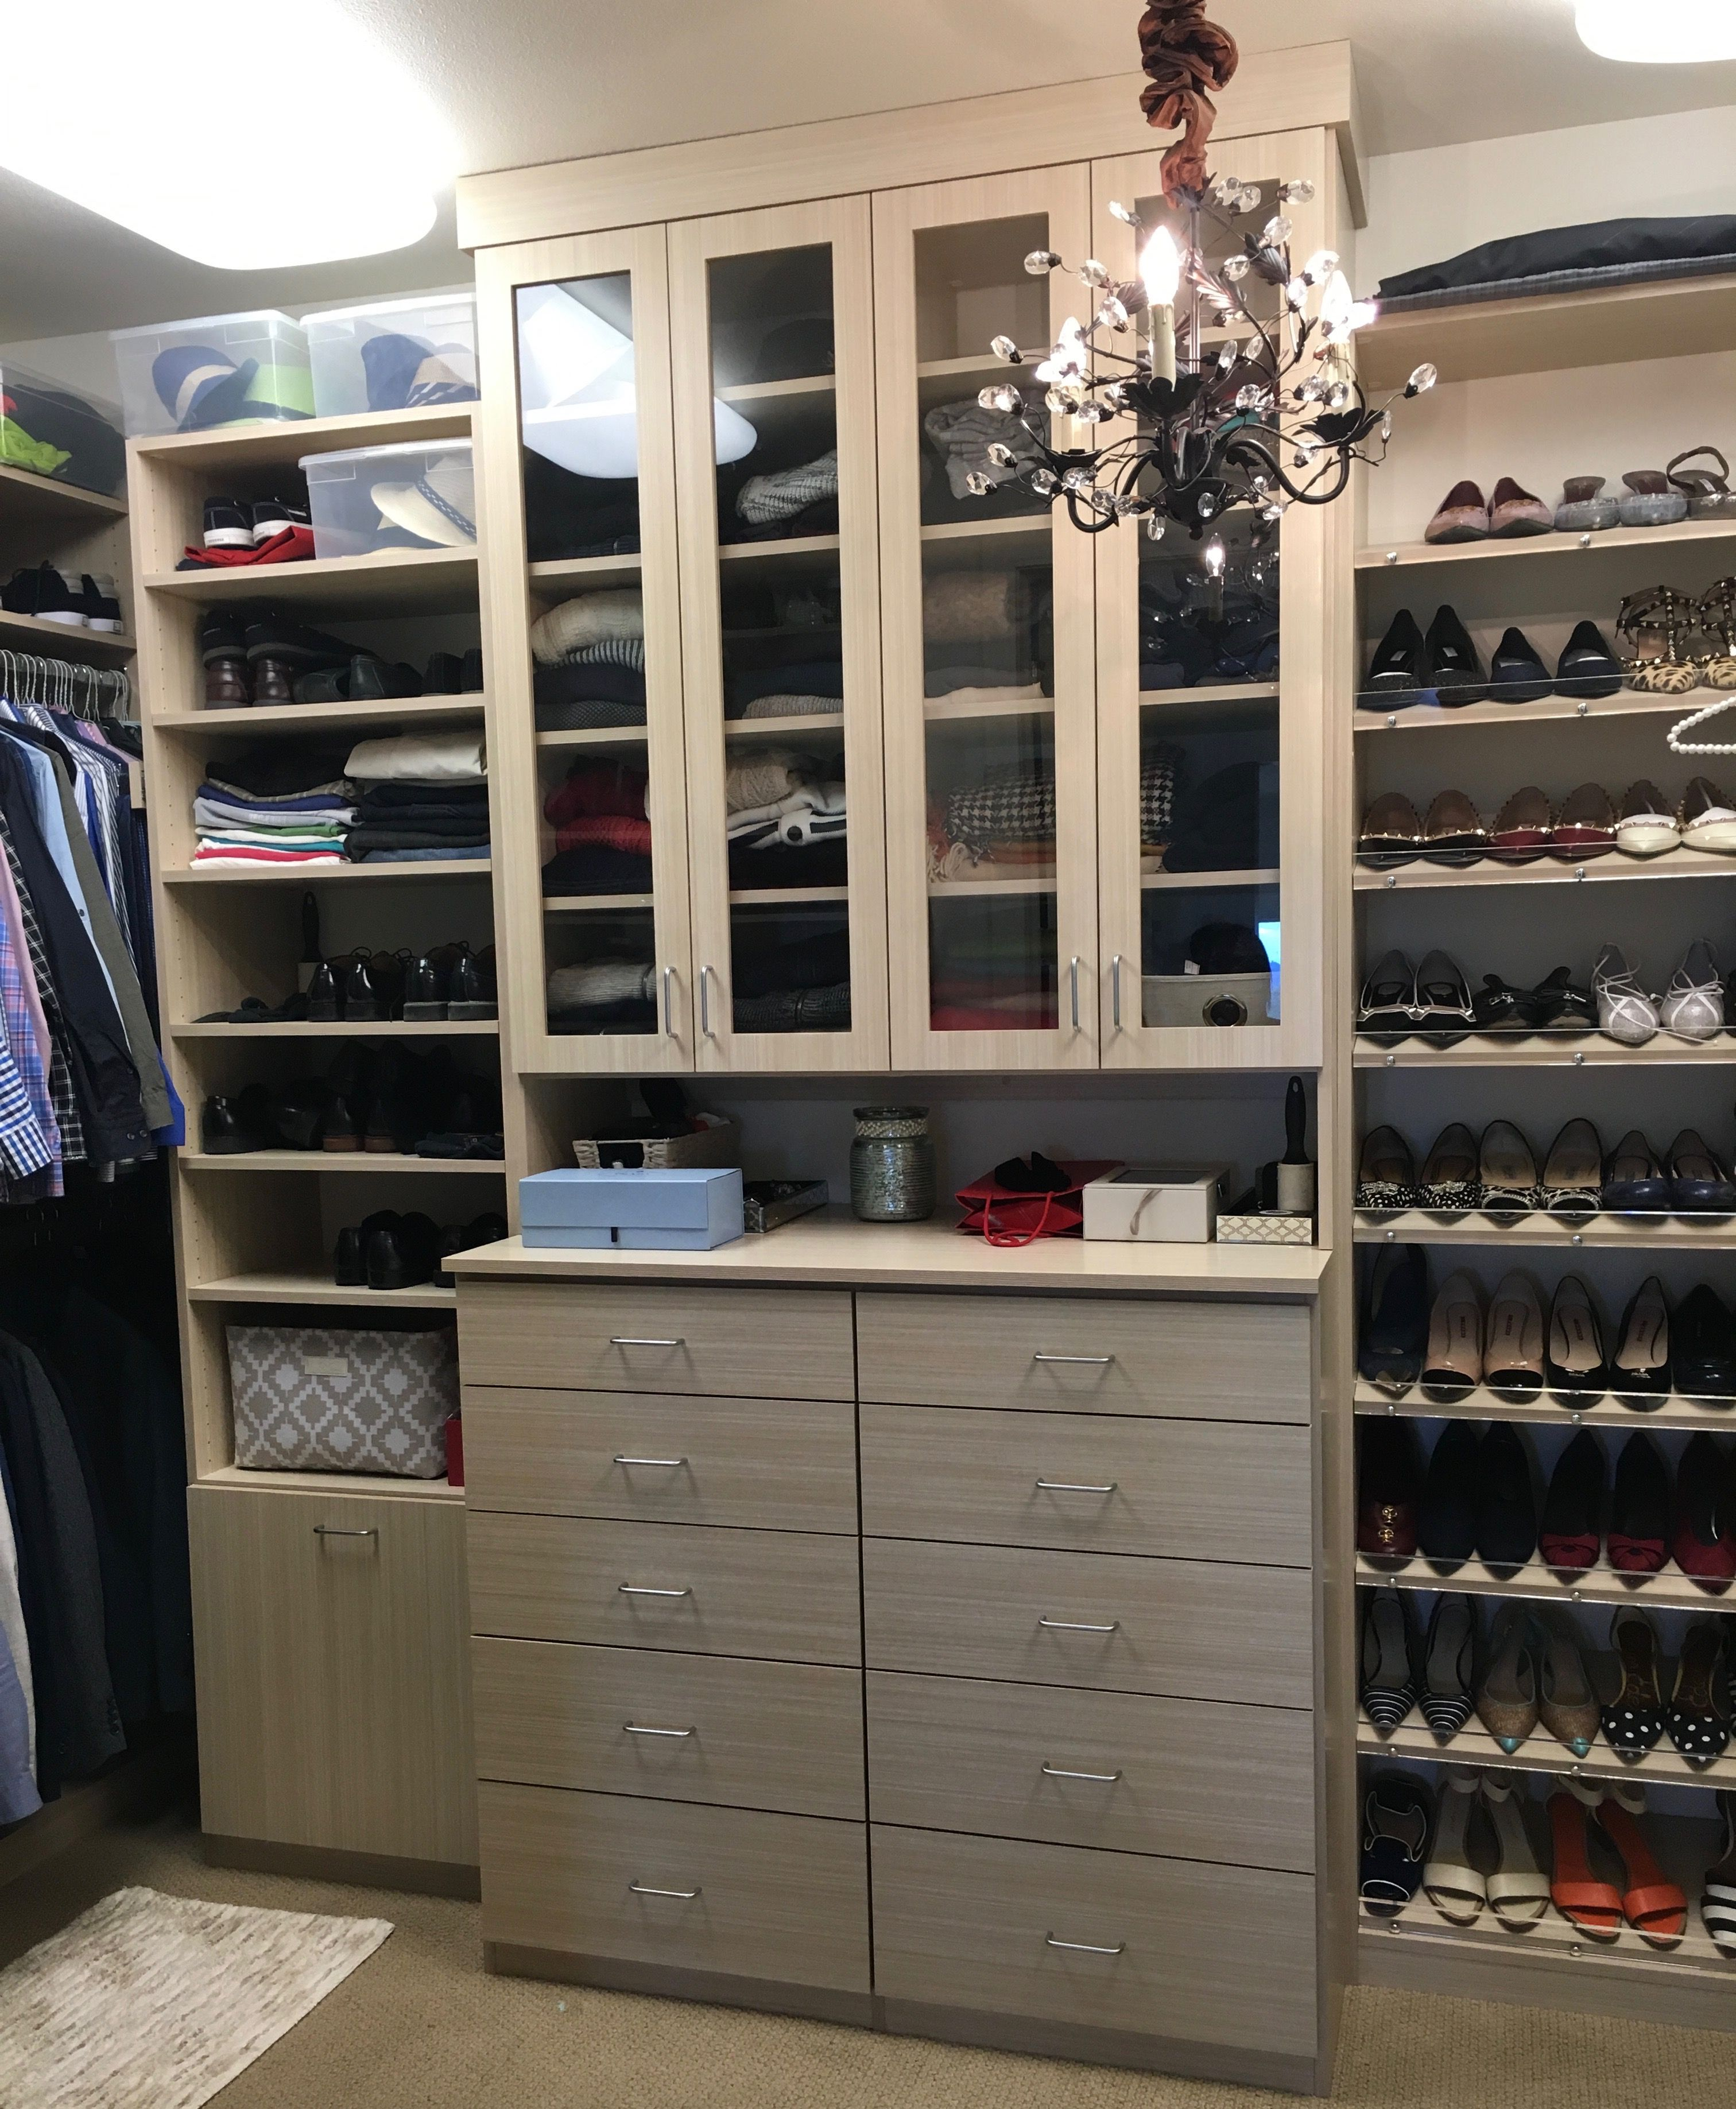 how to get rid of moths in your closet